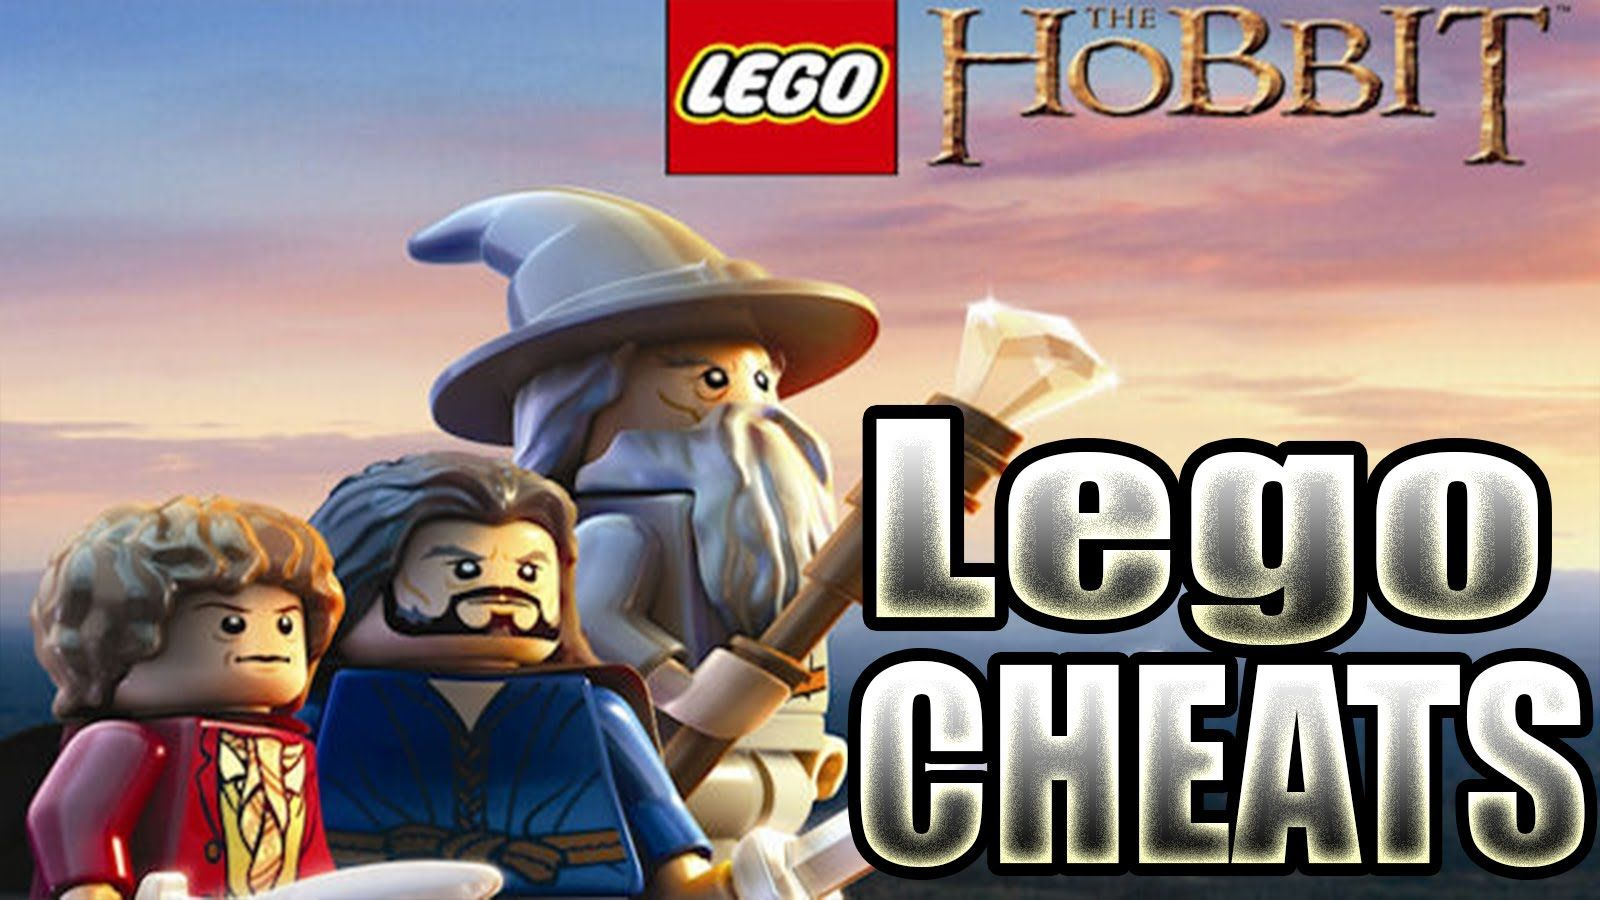 Lego The Hobbit Codes Cheats List Ps3 Xbox 360 Wii U 3ds Pc Ps4 Lego Hobbit The Hobbit Lego